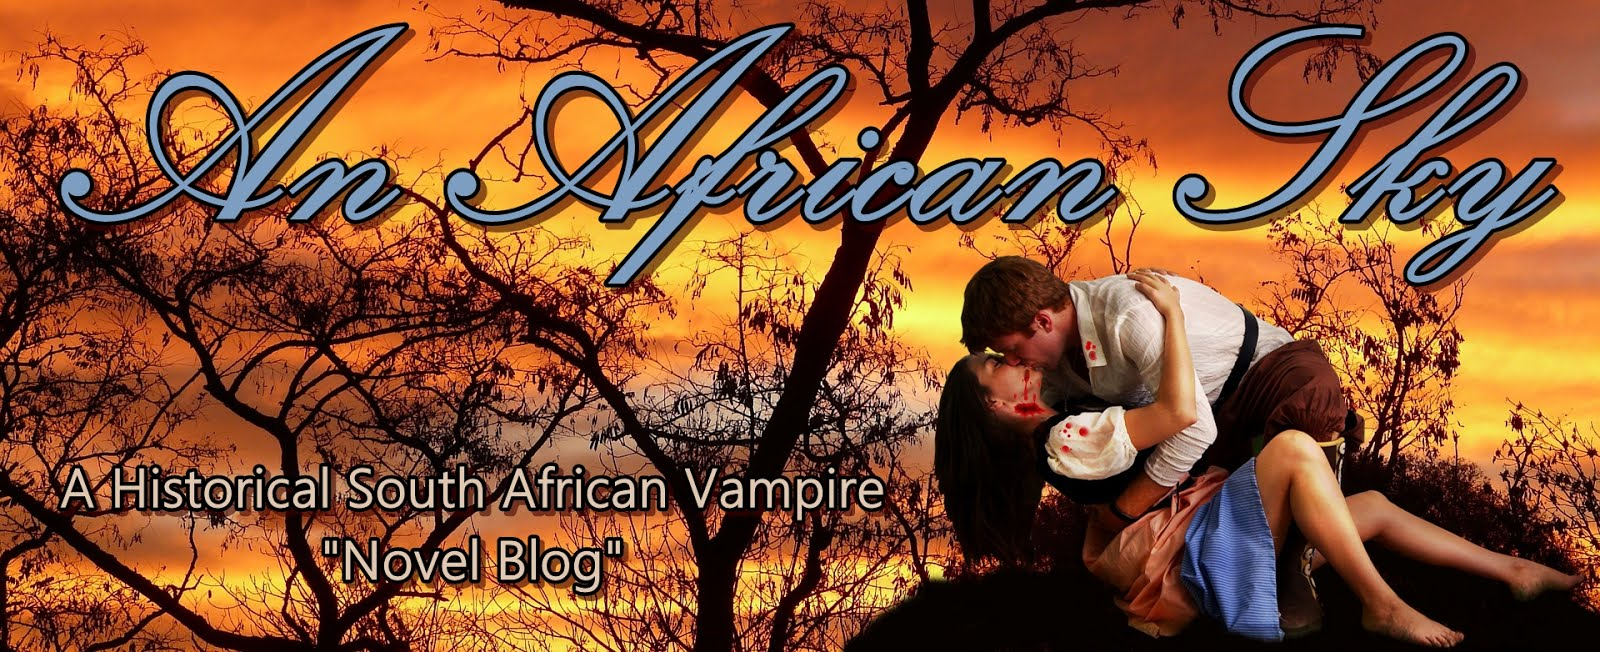 An African Sky - Vampire Historical Novel Blog